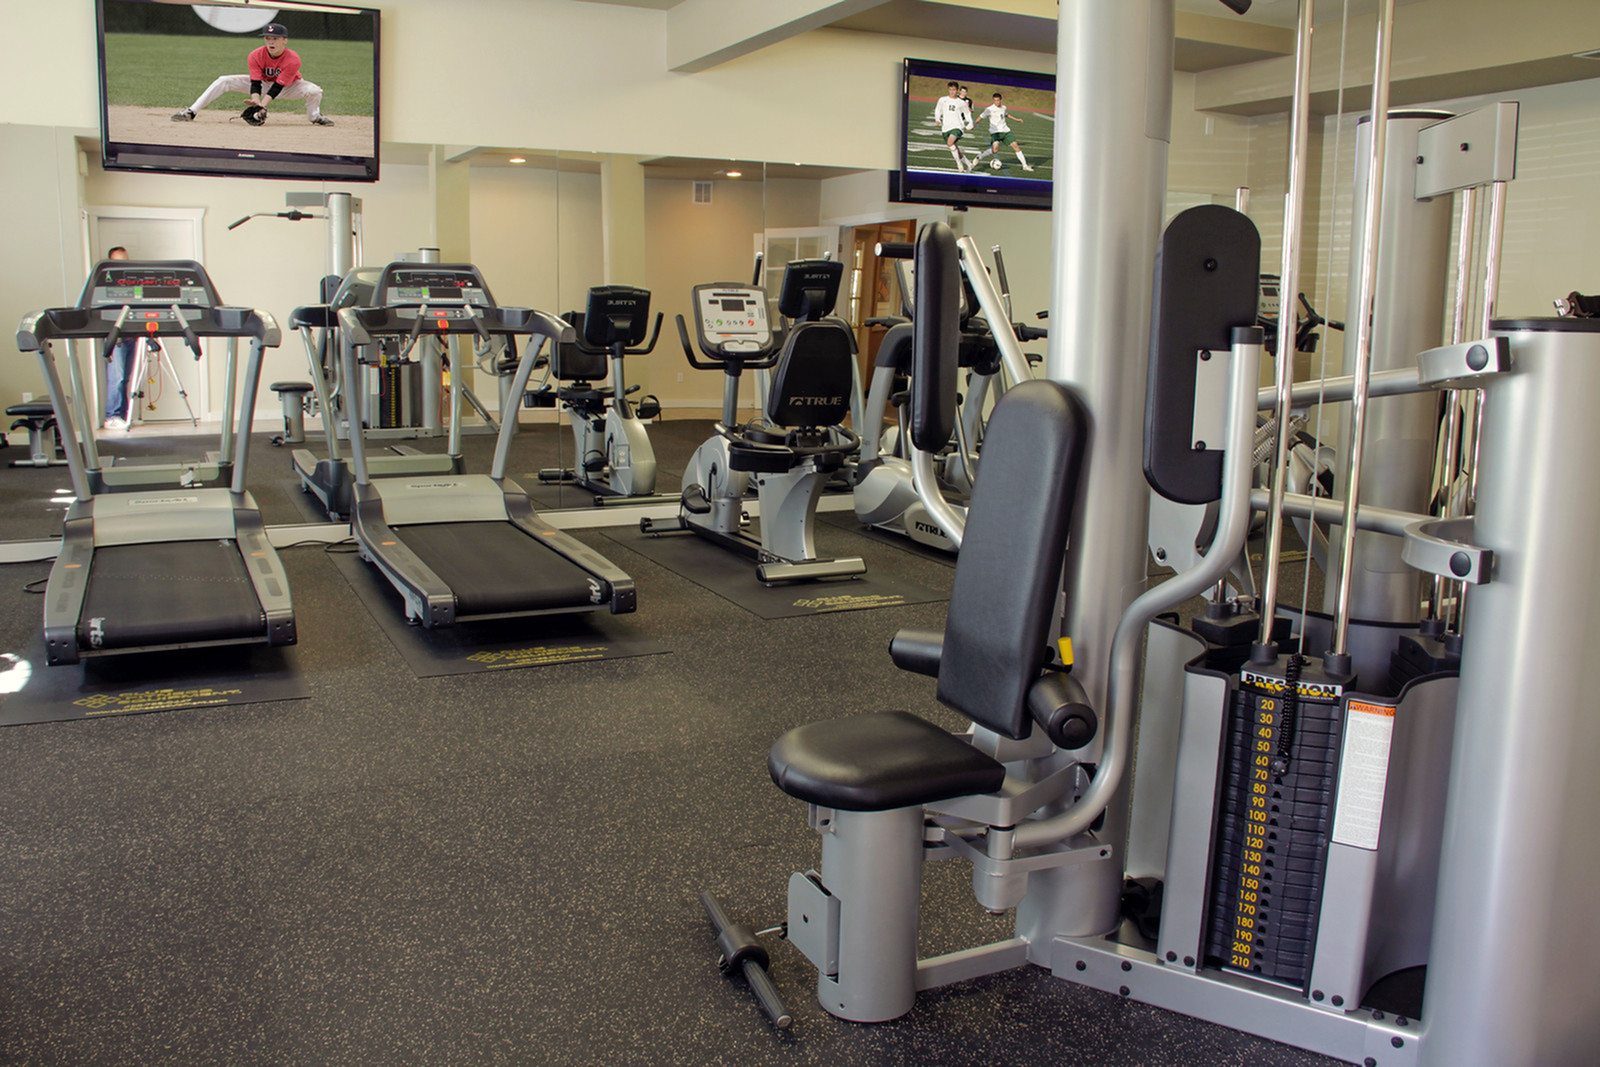 Resident Fitness Center | Apartments Tacome, WA | Nantucket Gate